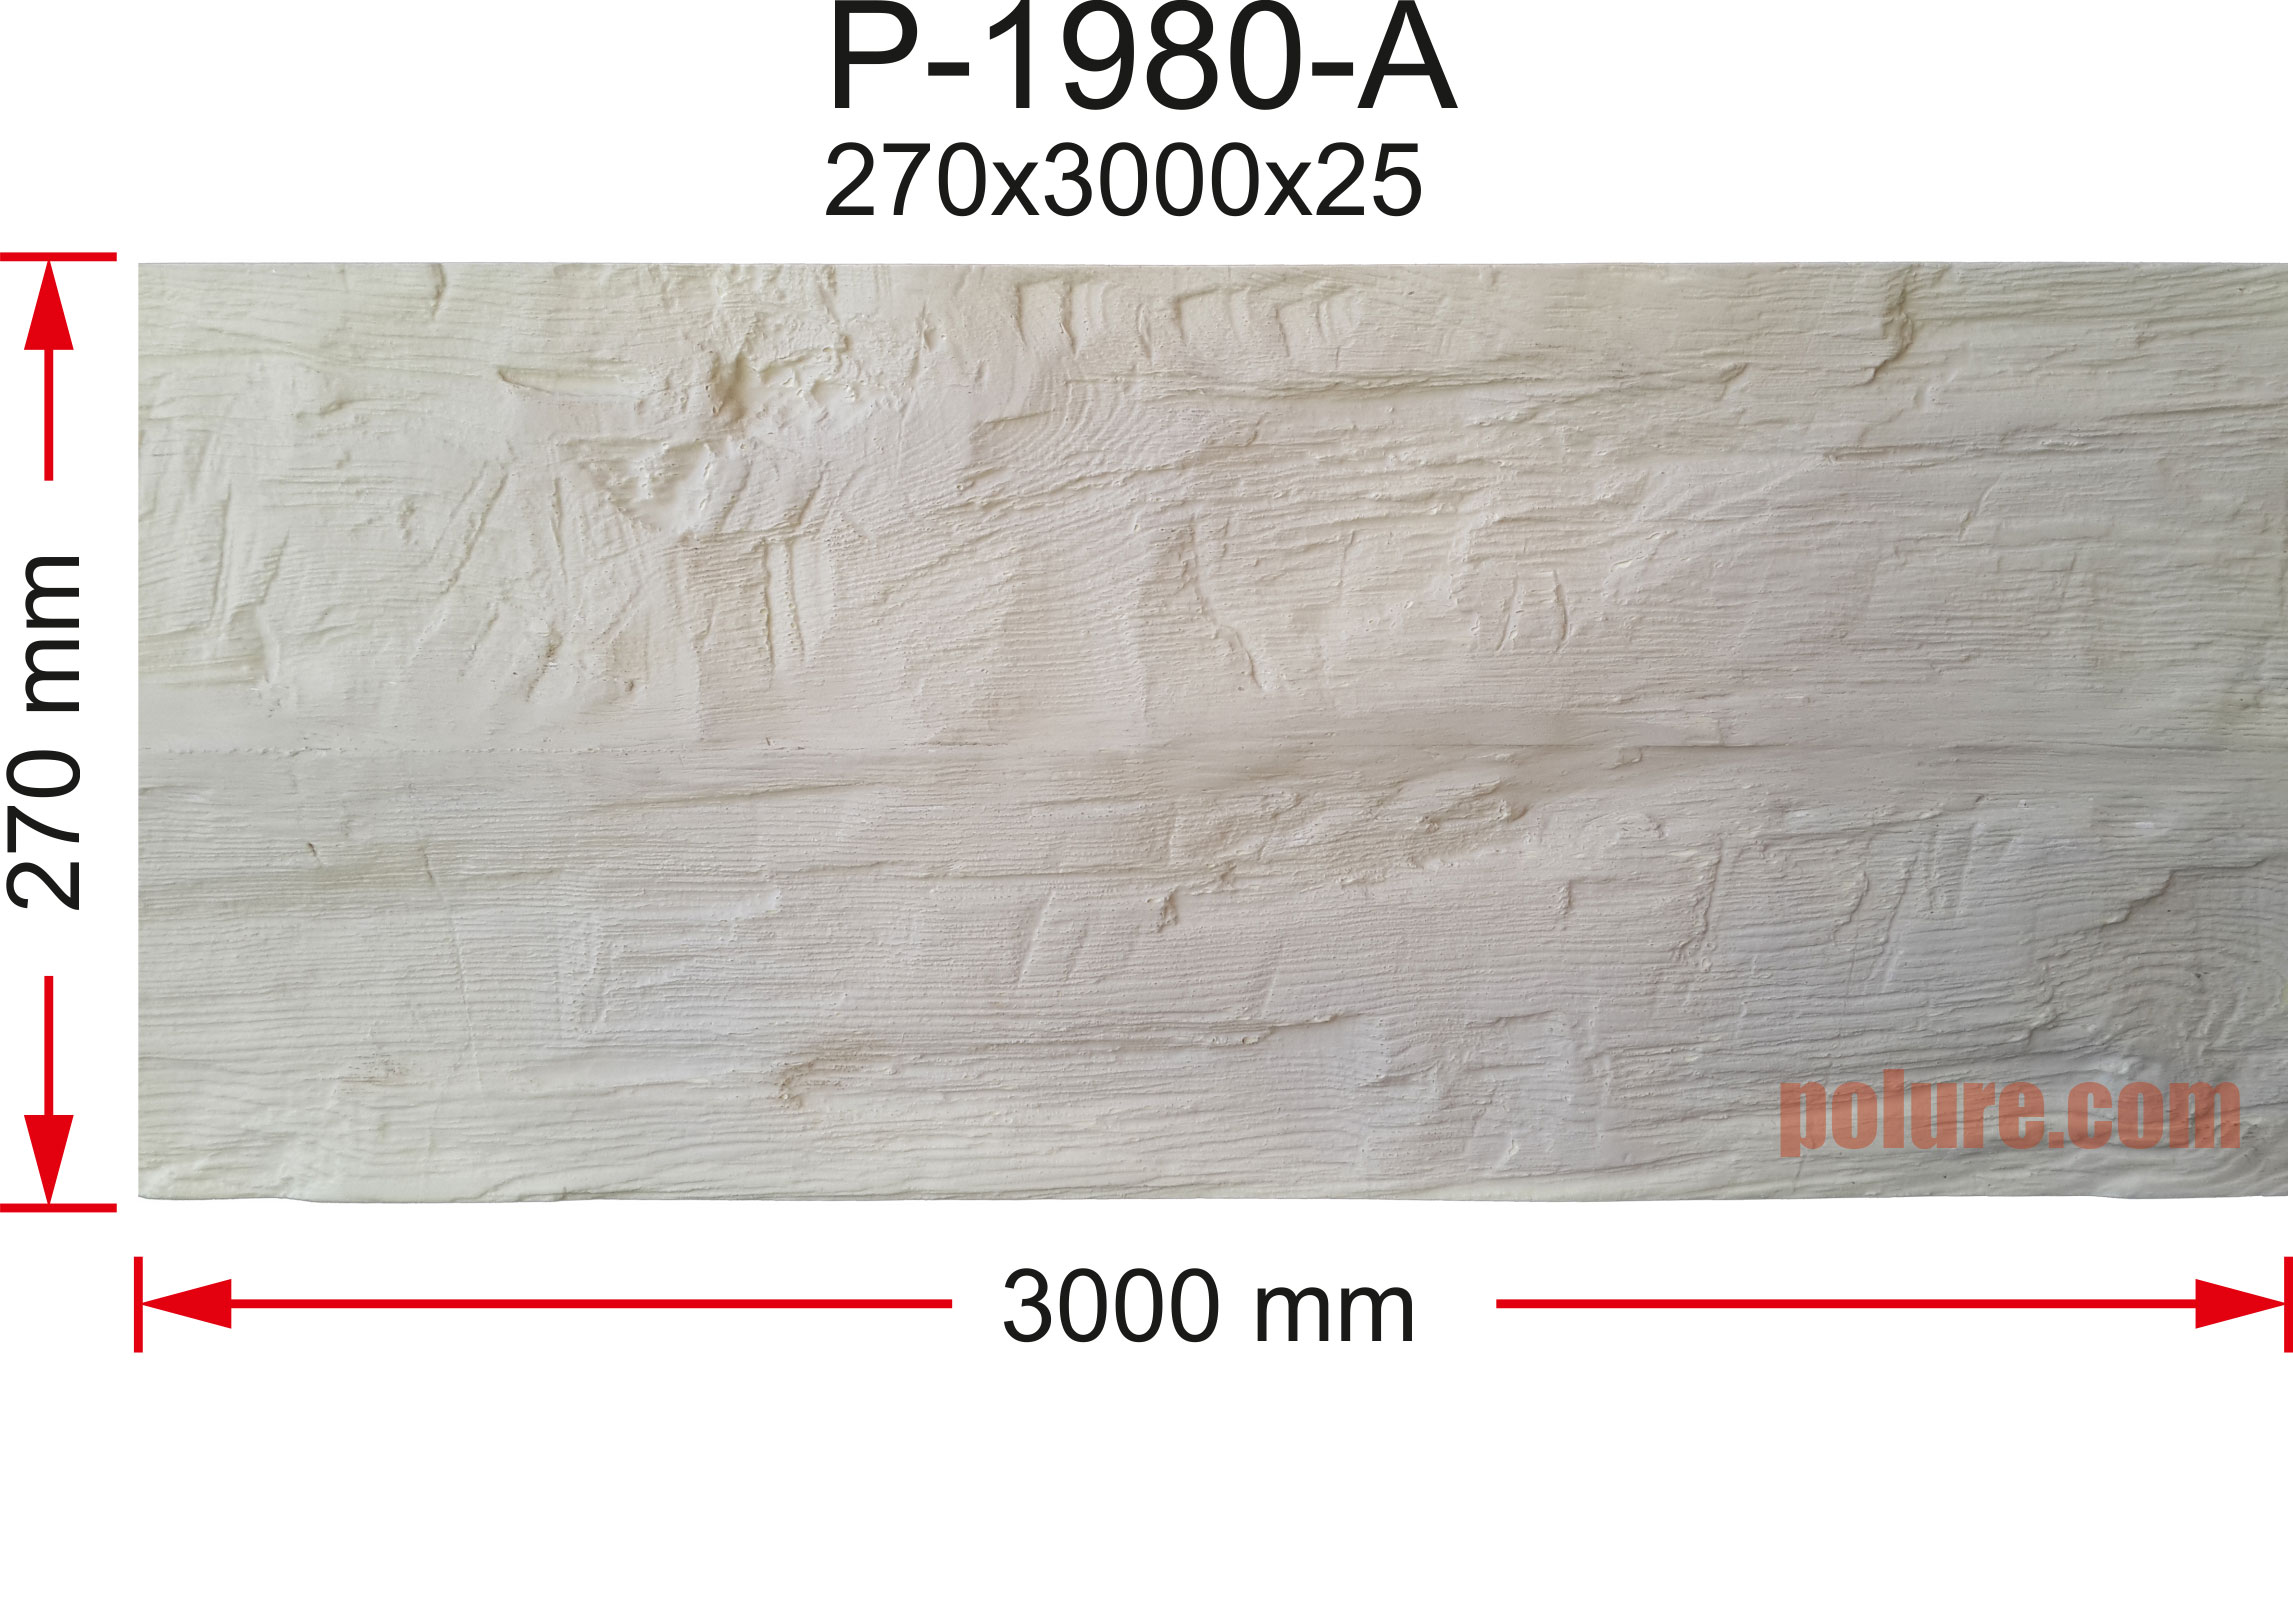 p-1980-a-polyurethane-decorative-wood-imitation-log-profile-panel-board-pu-moulding-model-and-price (2)